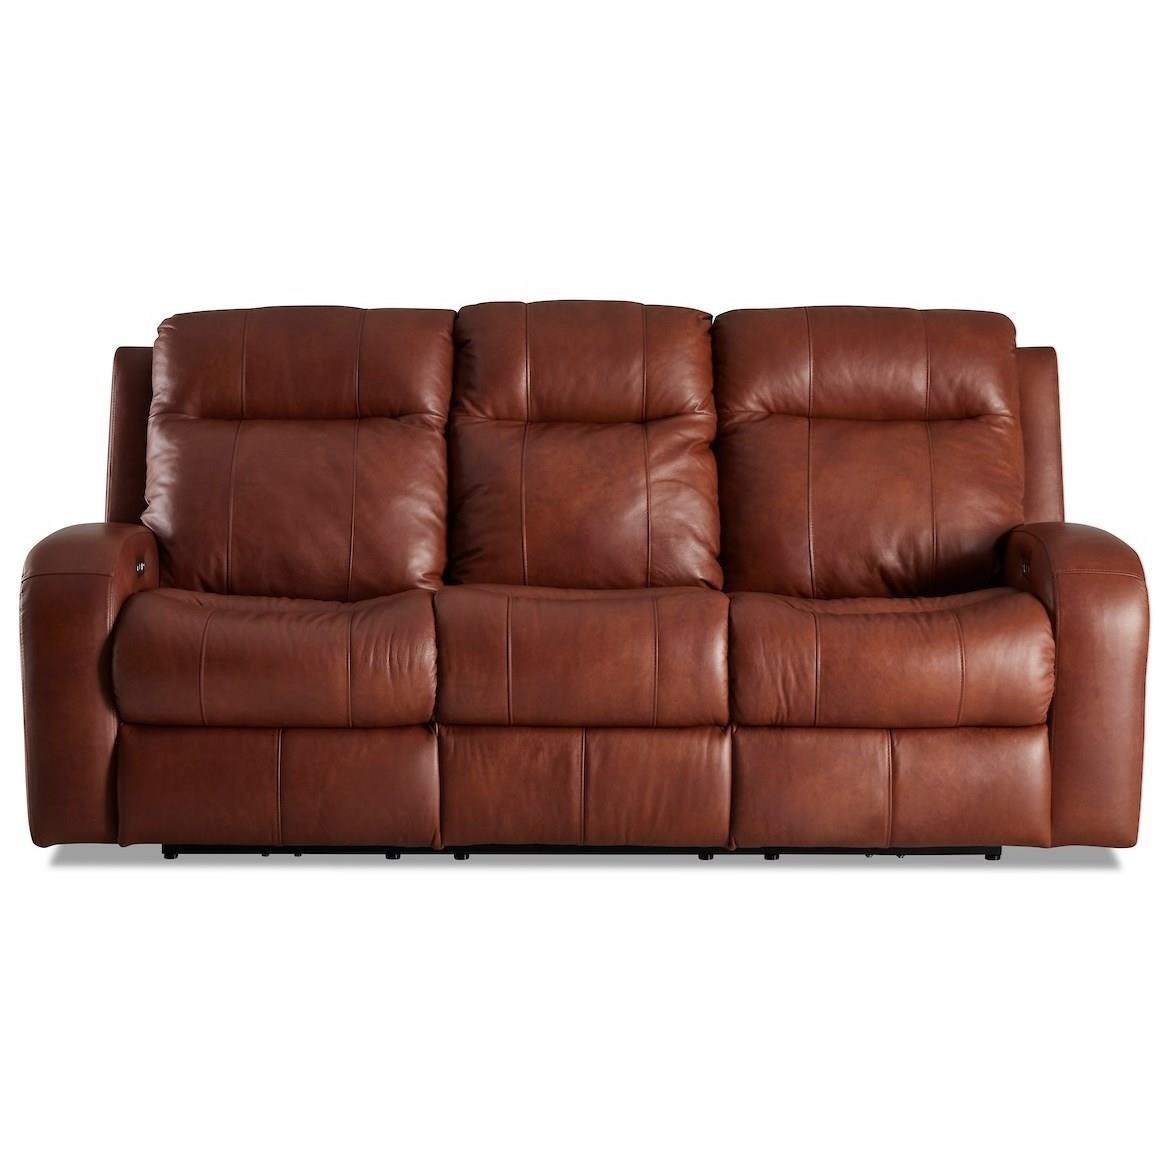 Benson Power Reclining Sofa w/ Power Headrests by Klaussner at Northeast Factory Direct